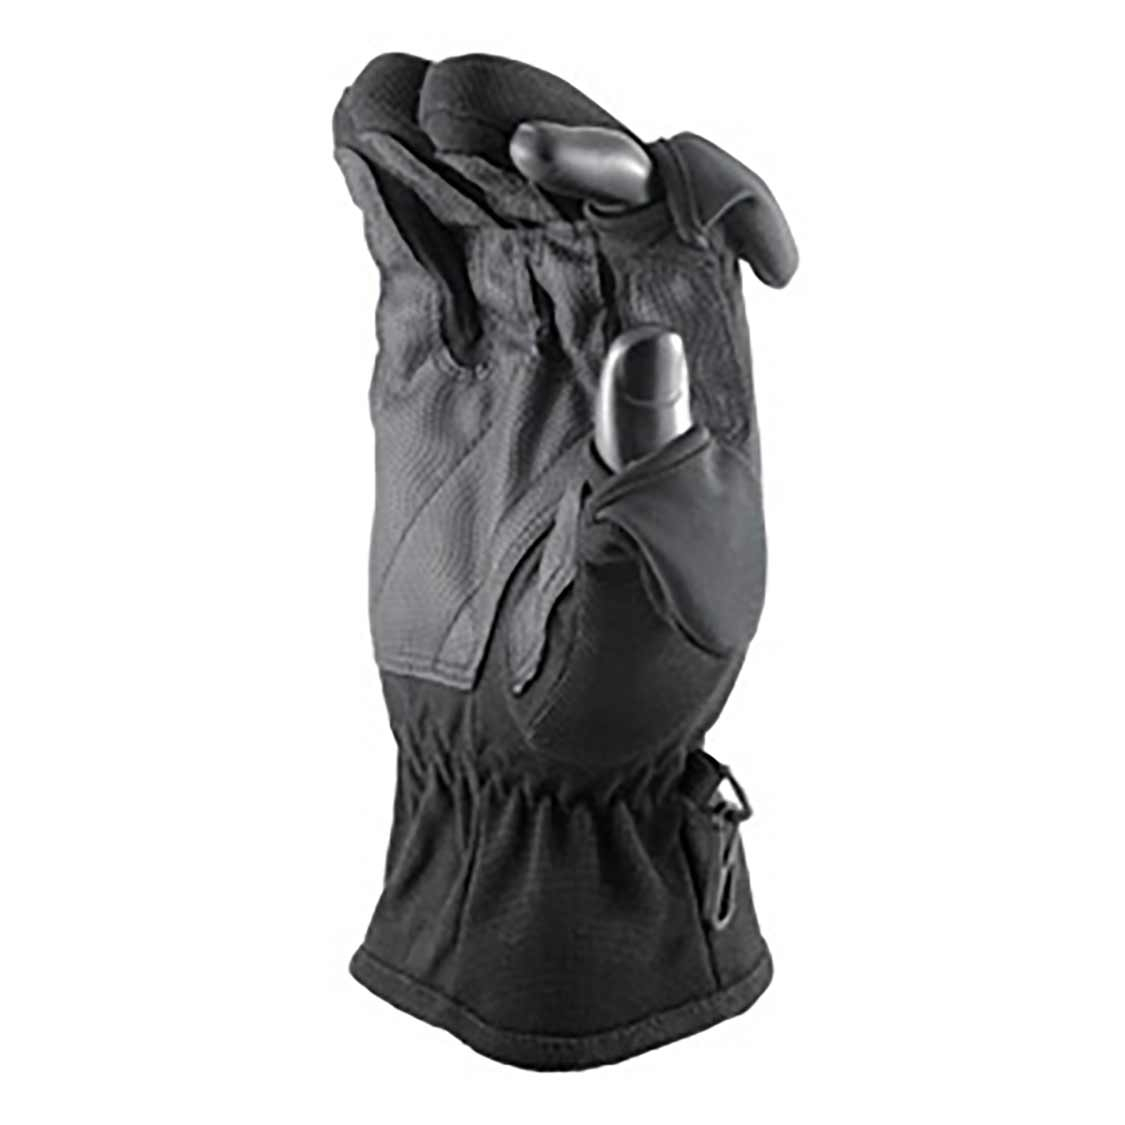 Optex Freehands Photo Gloves (medium)